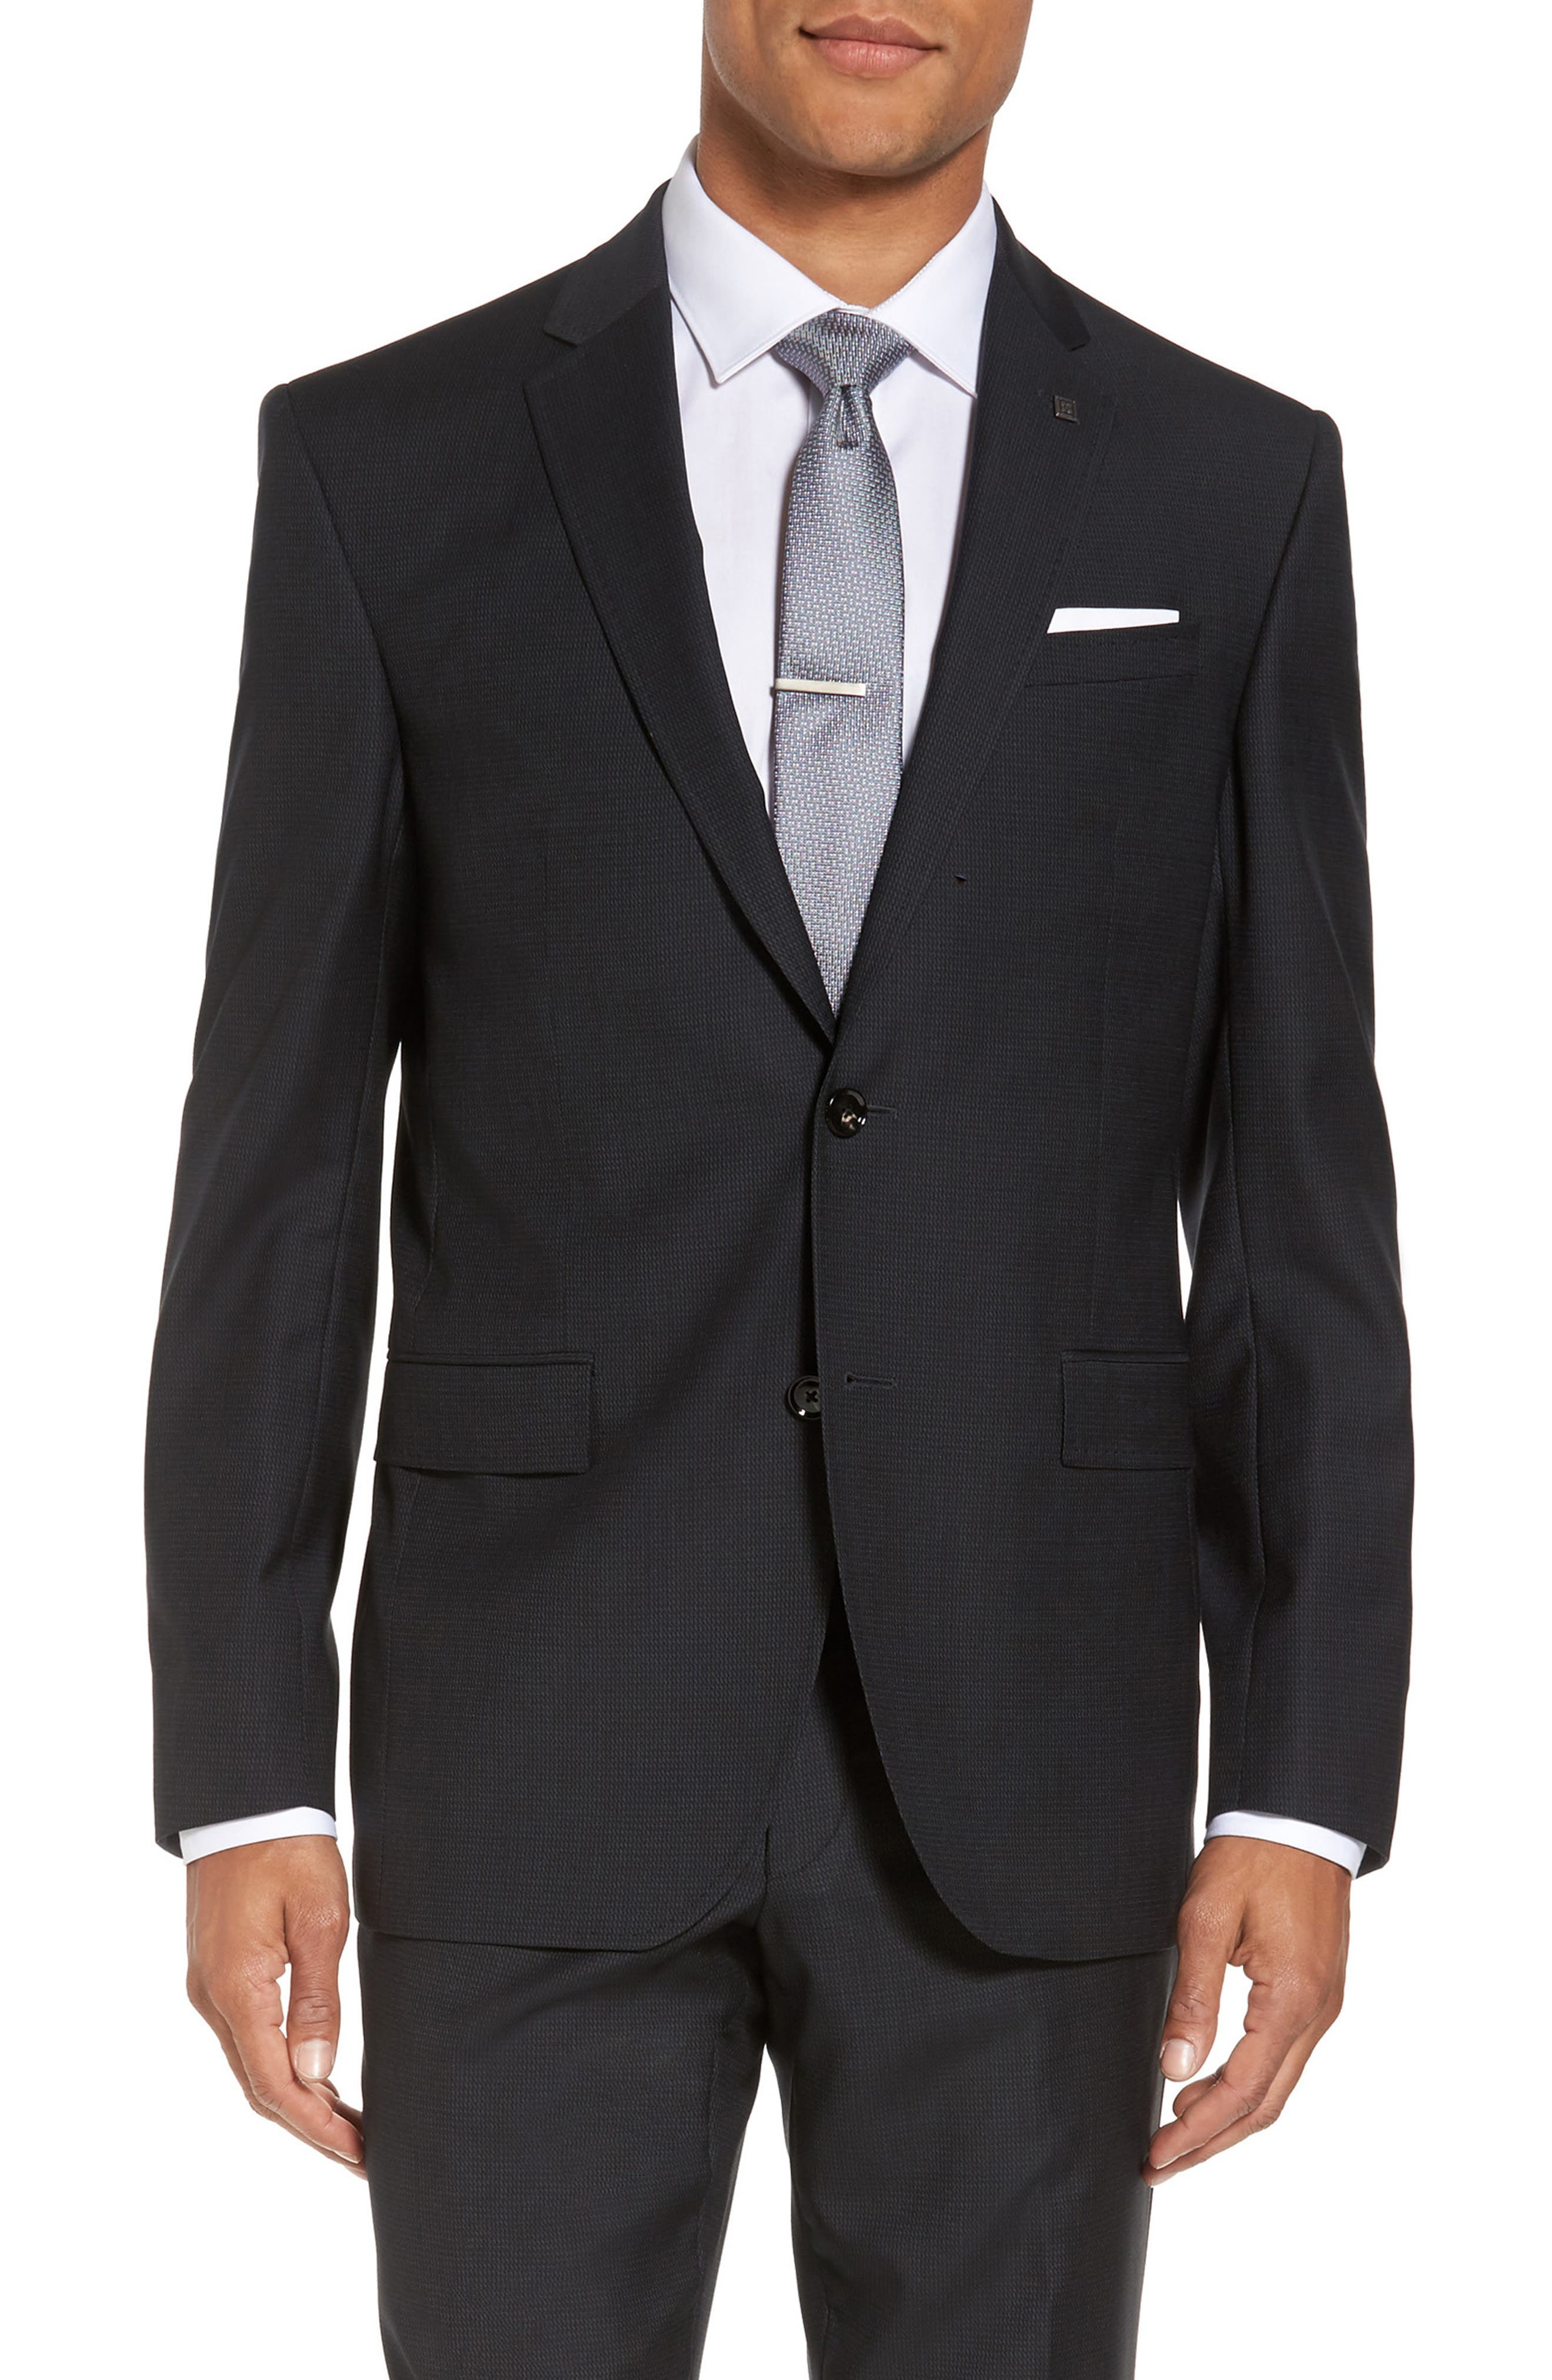 Jay Trim Fit Solid Wool Suit,                             Alternate thumbnail 5, color,                             Black Charcoal